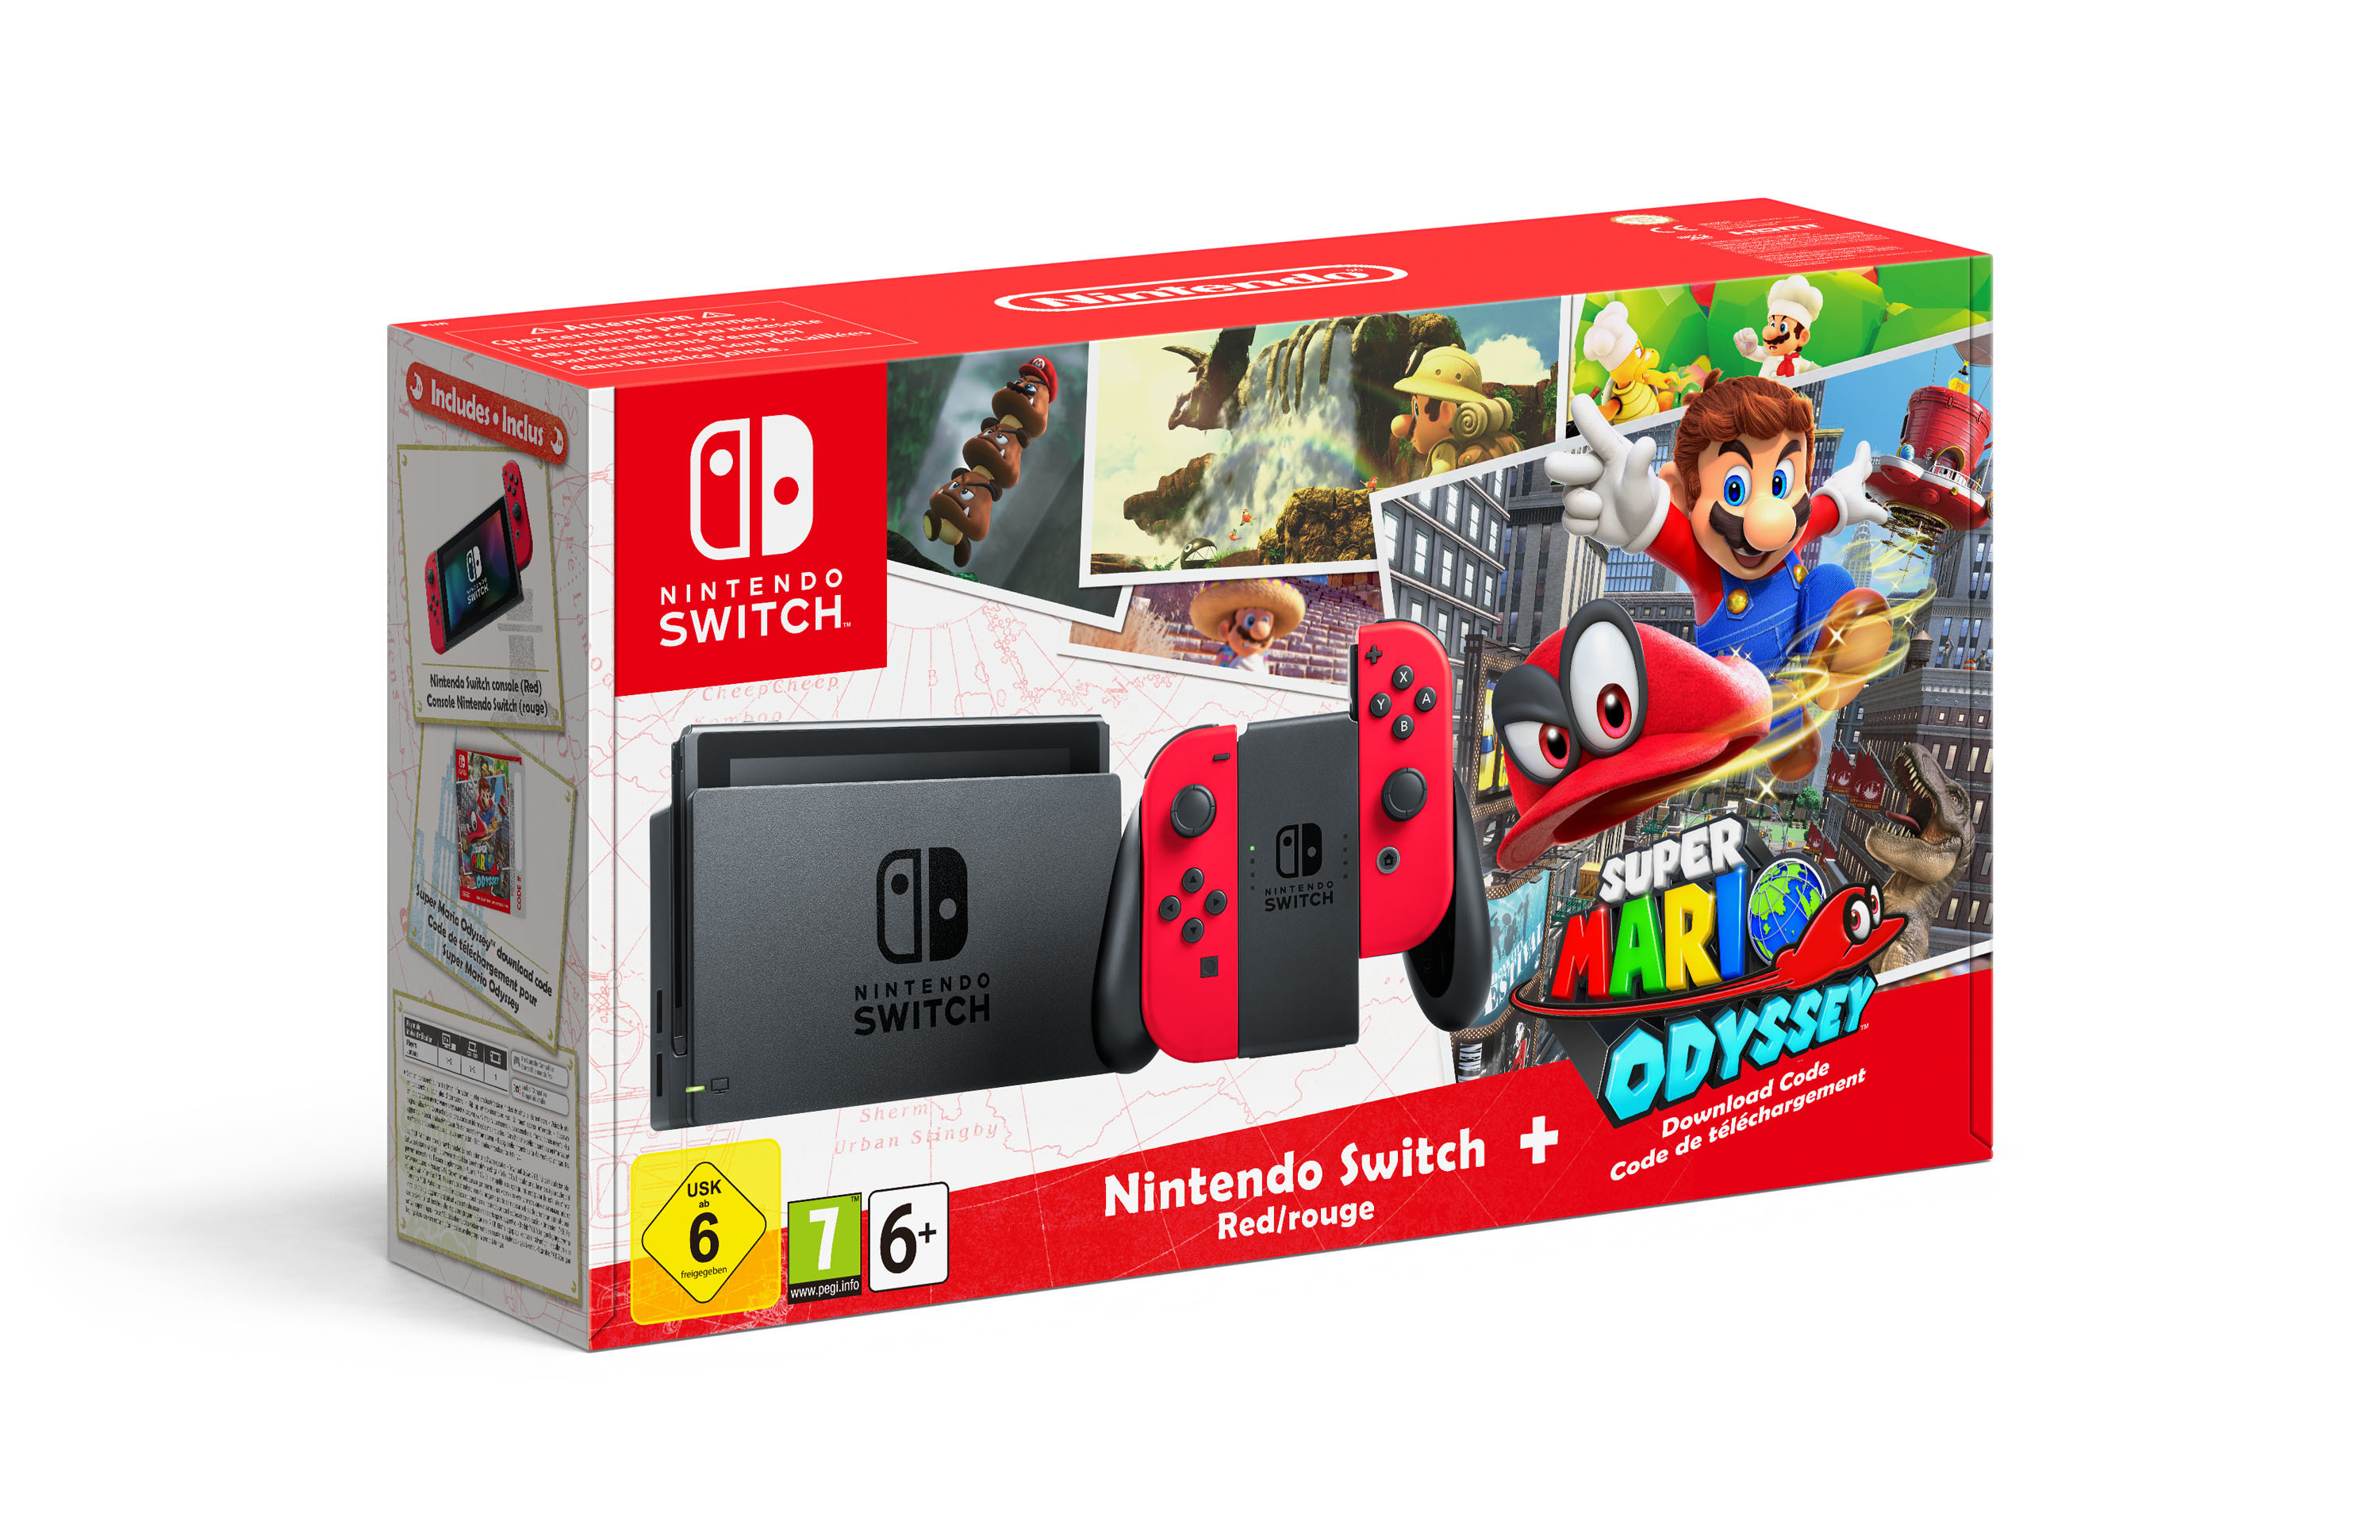 Super Mario Odyssey Switch Bundle Announced